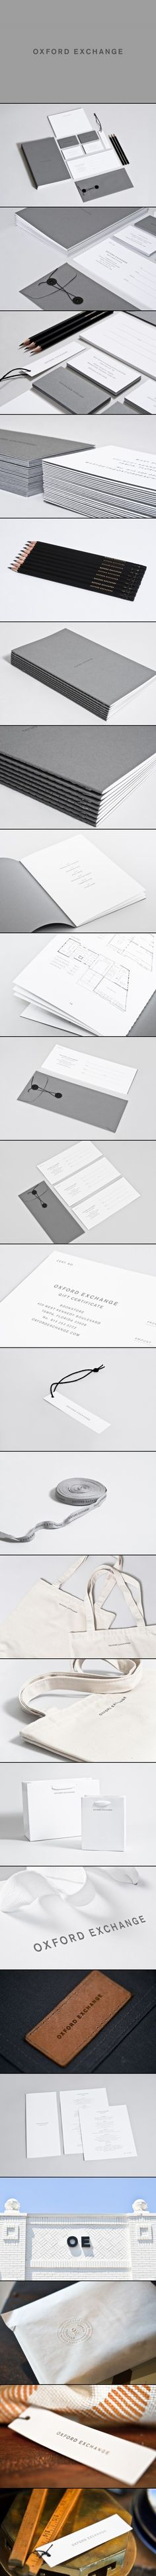 Oxford Exchange | Studio Birdsall | #stationary #corporate #design #corporatedesign #identity #branding #marketing < repinned by www.BlickeDeeler.de | Take a look at www.LogoGestaltung-Hamburg.de